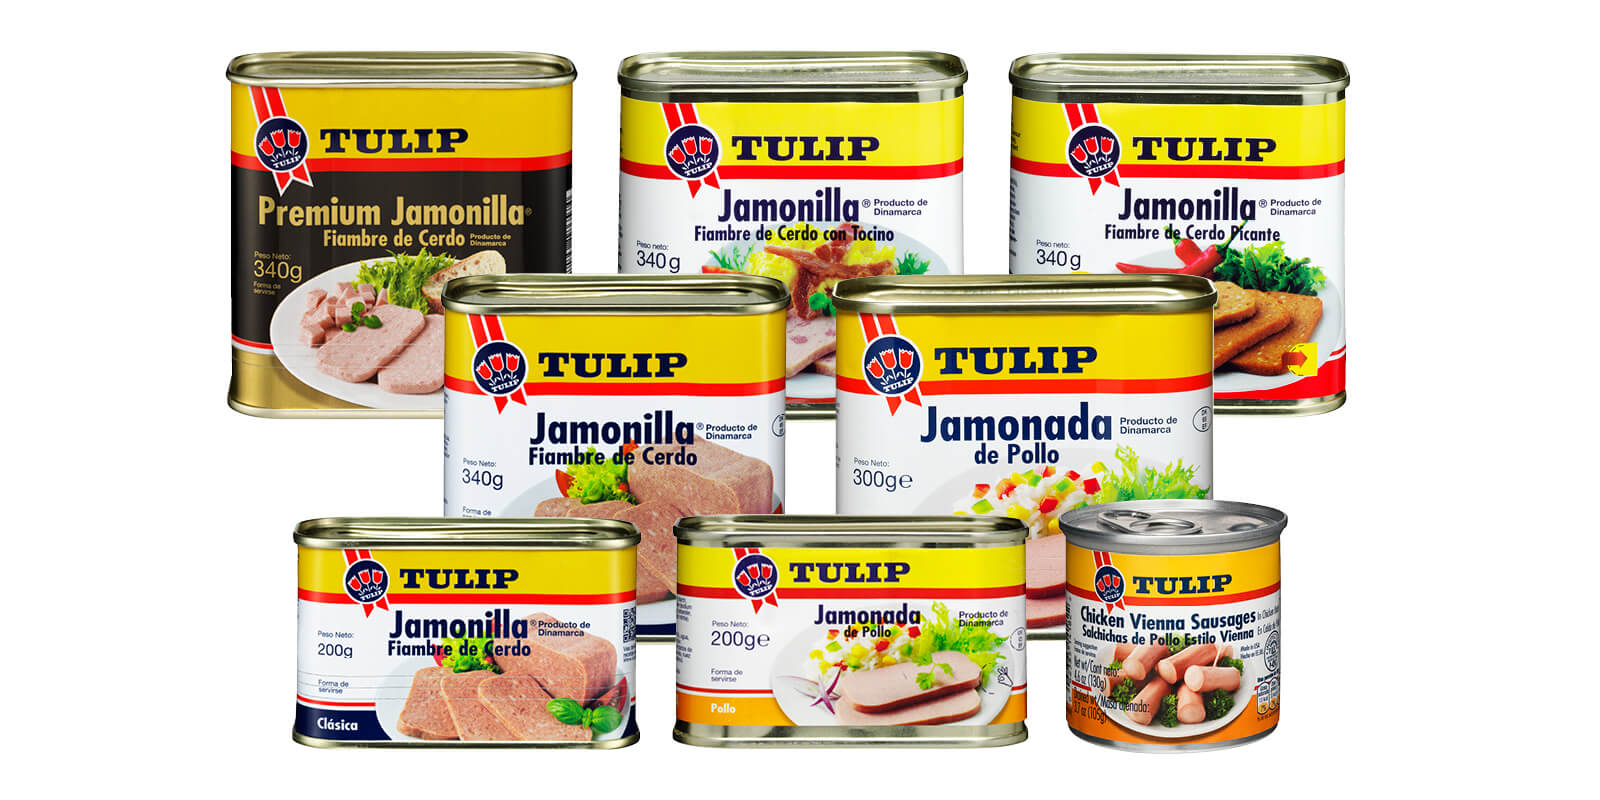 Tulip product line in Panama